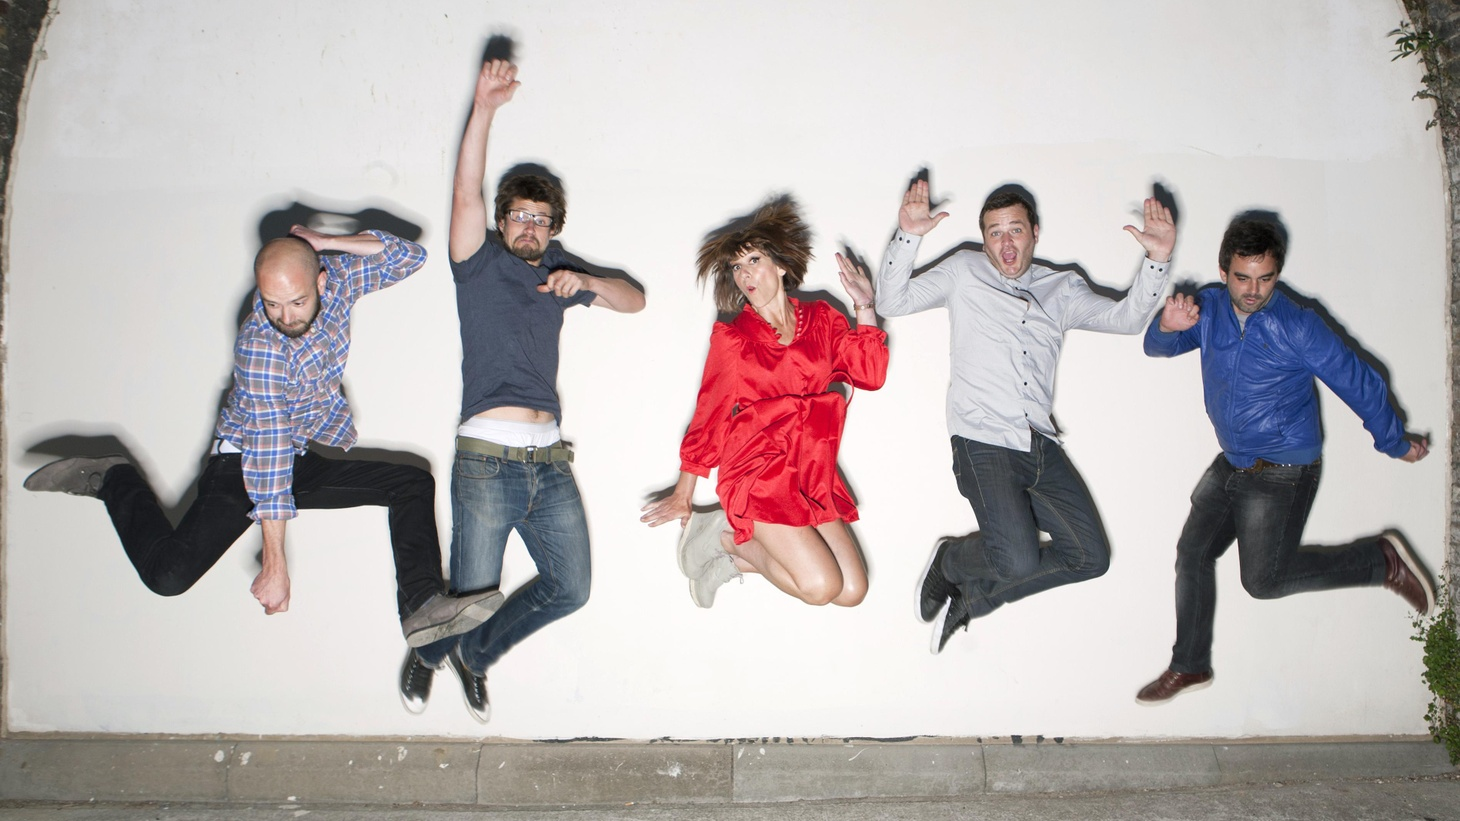 UK electronica outfit Crazy P started out with a deep  love of house and disco. Their fifth album is a buttery mix  of beats with the honey-hued tones of Danielle Moore.